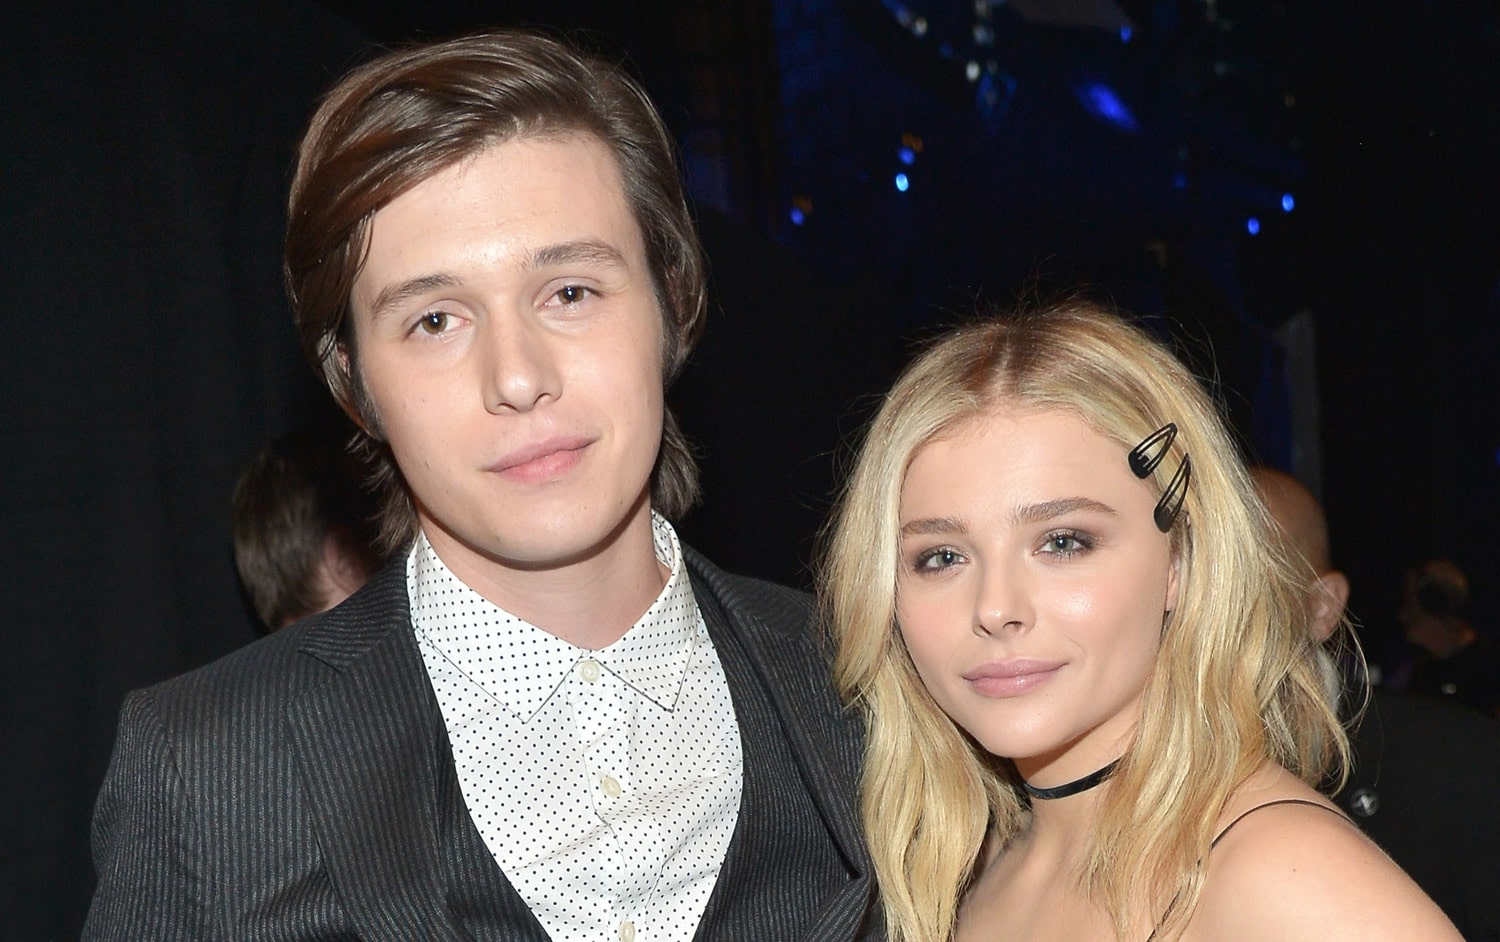 Nick Robinson and Chloe Grace Moretz